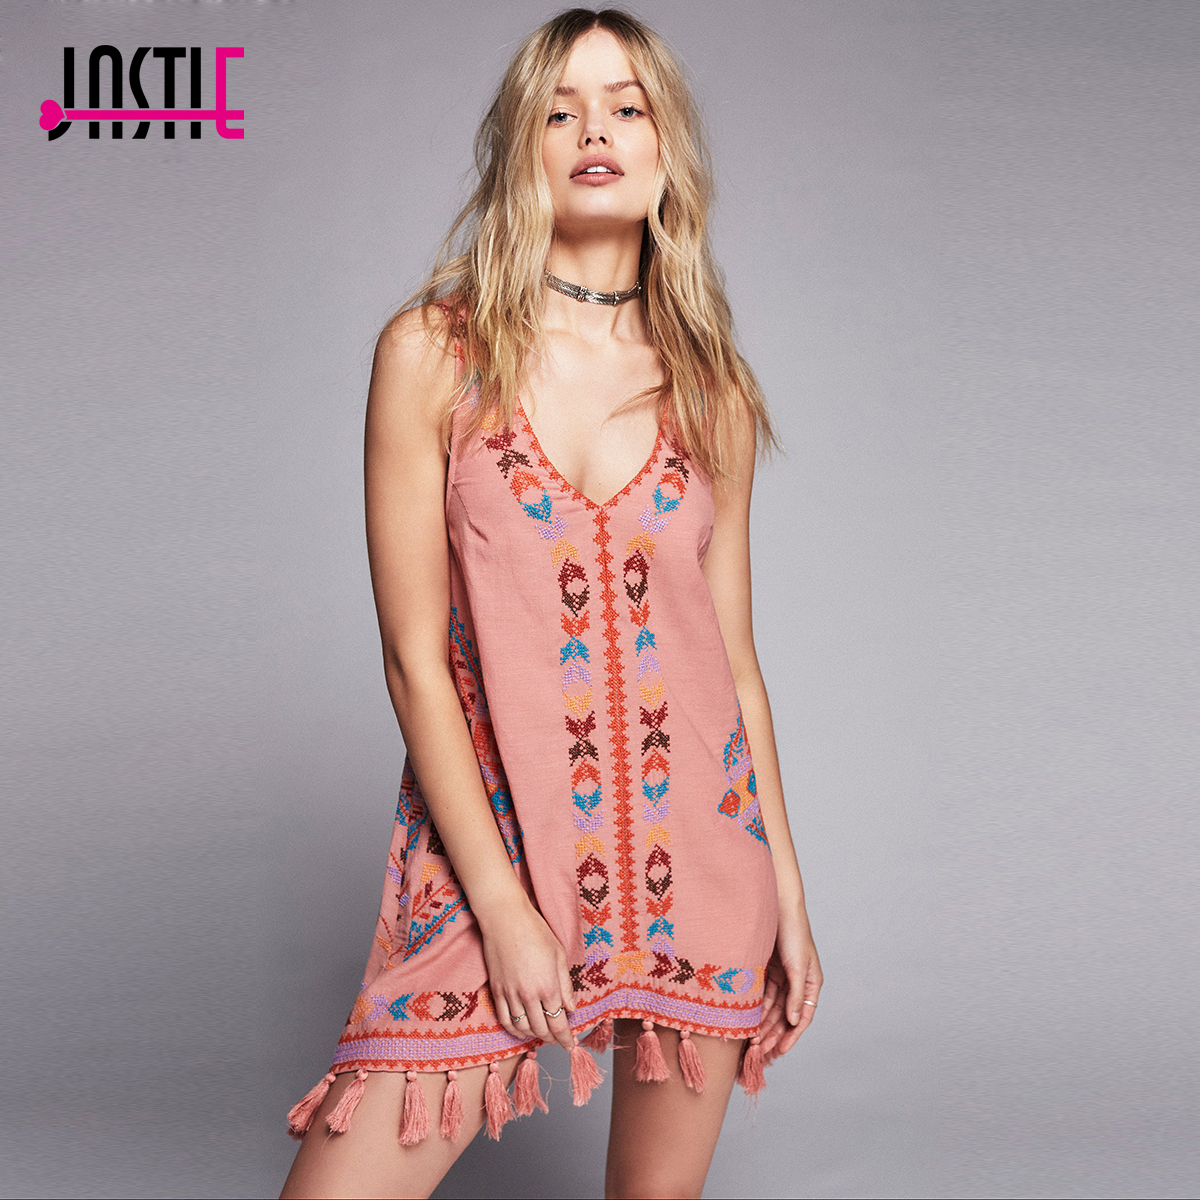 d080721d130e Jastie Vintage Embroidered Gaia Slip Women Mini Dress Tassels Hem Boho Dress  Shapeless Silhouette V-Neck Summer Dress Vestidos